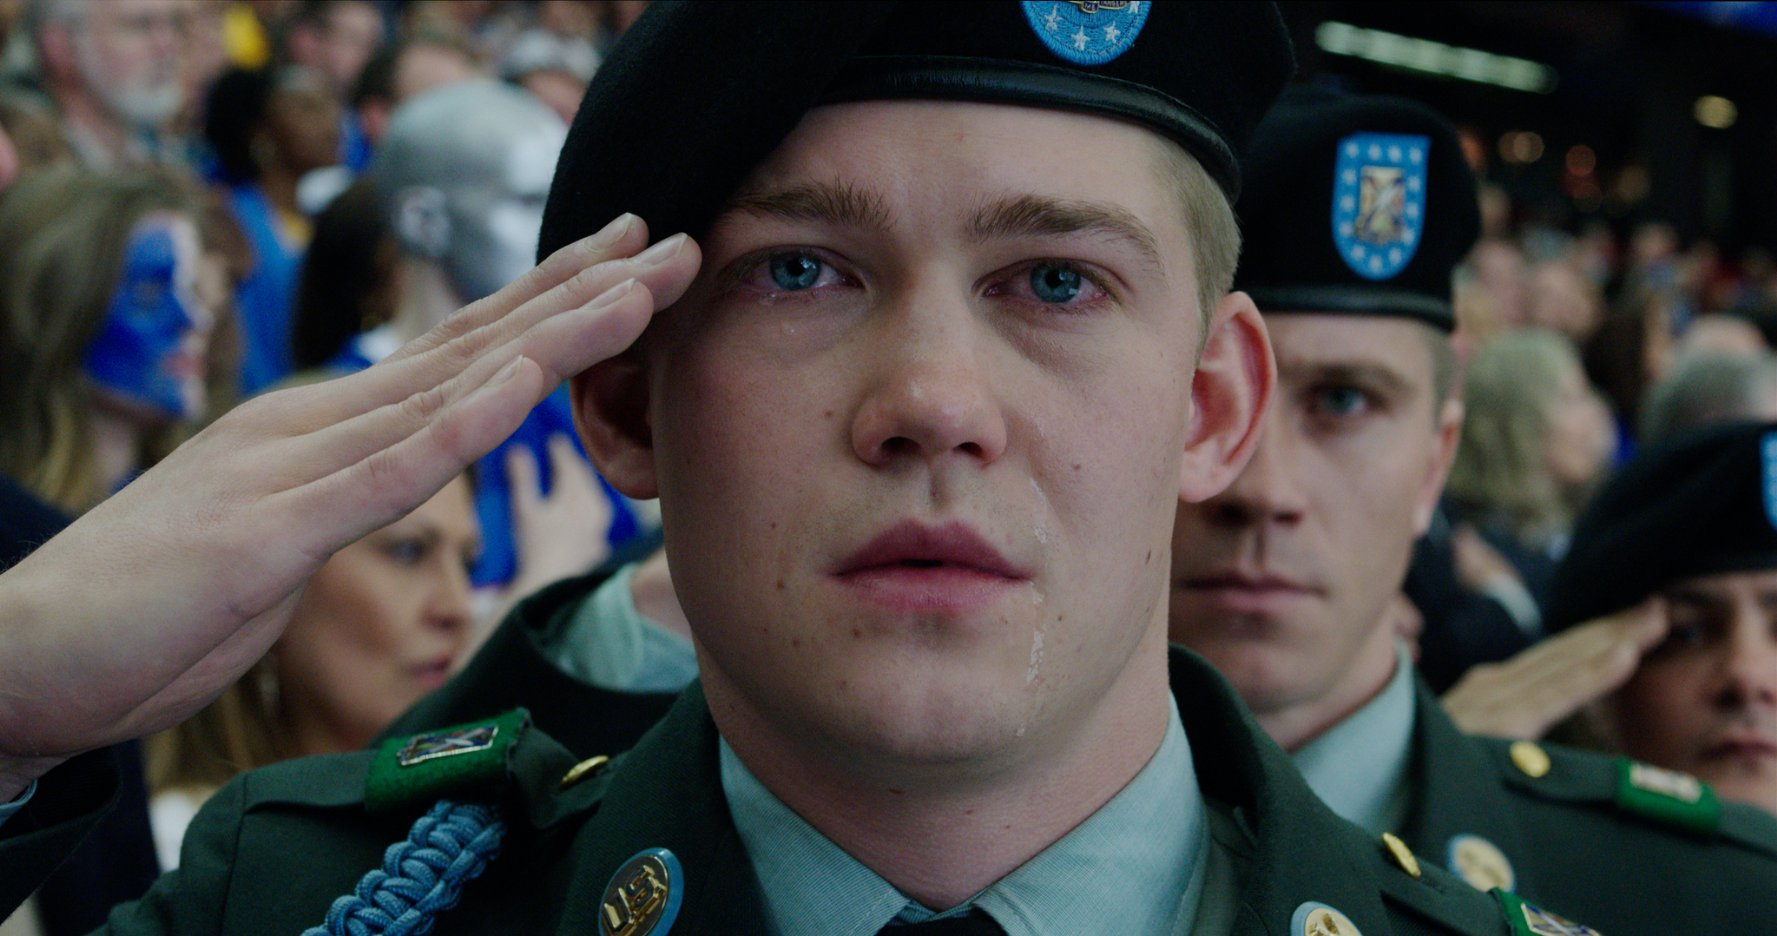 Billy Lynn's Long Halftime review